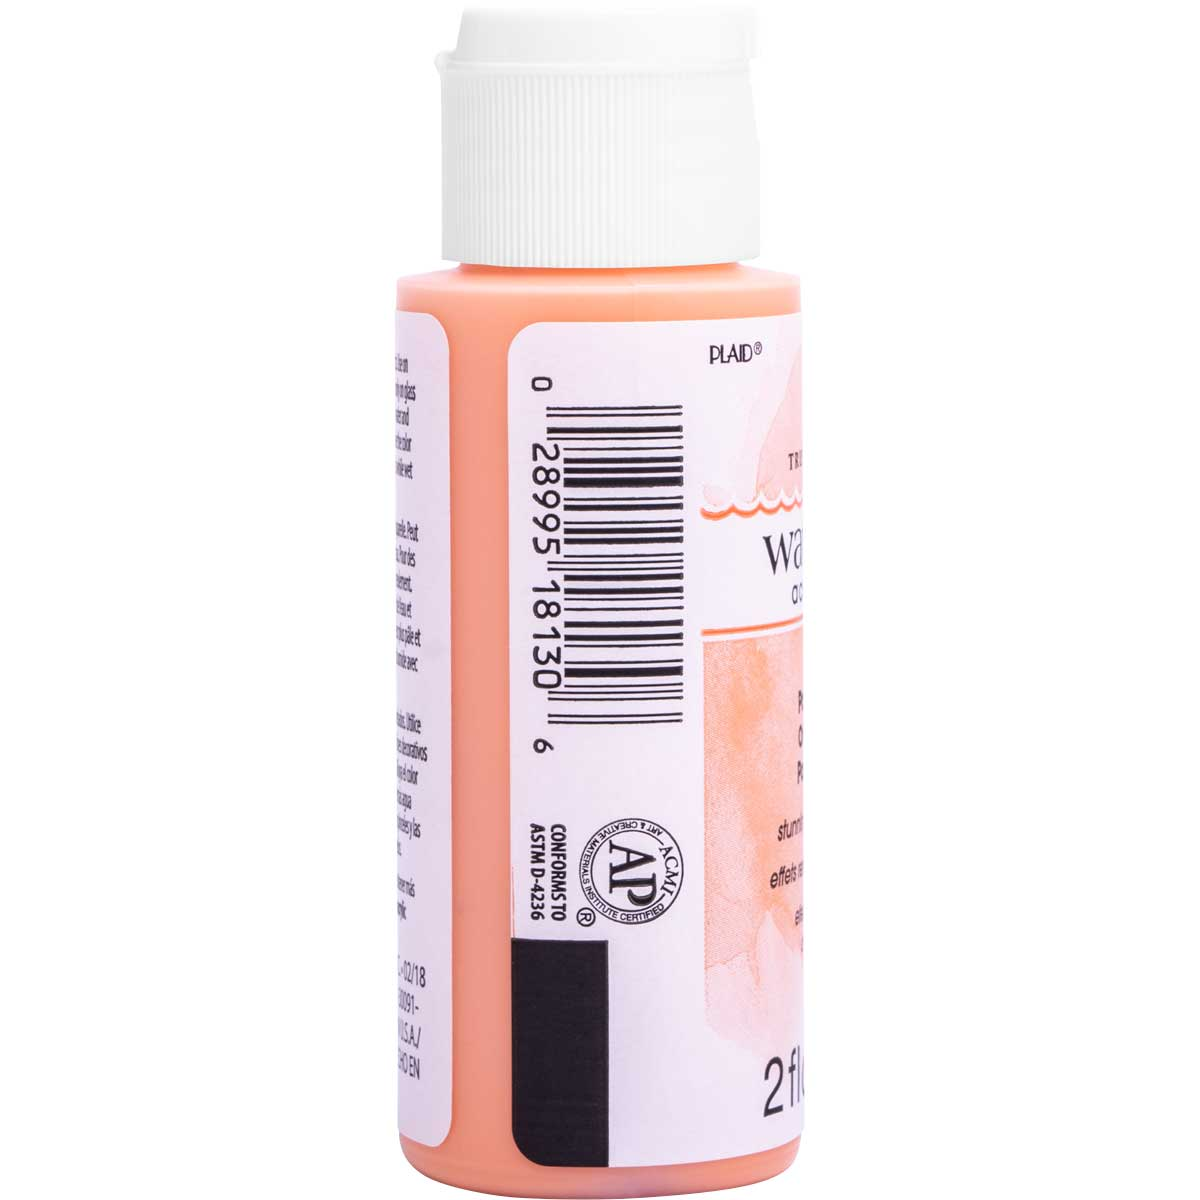 FolkArt ® Watercolor Acrylic Paint™ - Pastel Orange, 2 oz. - 18130